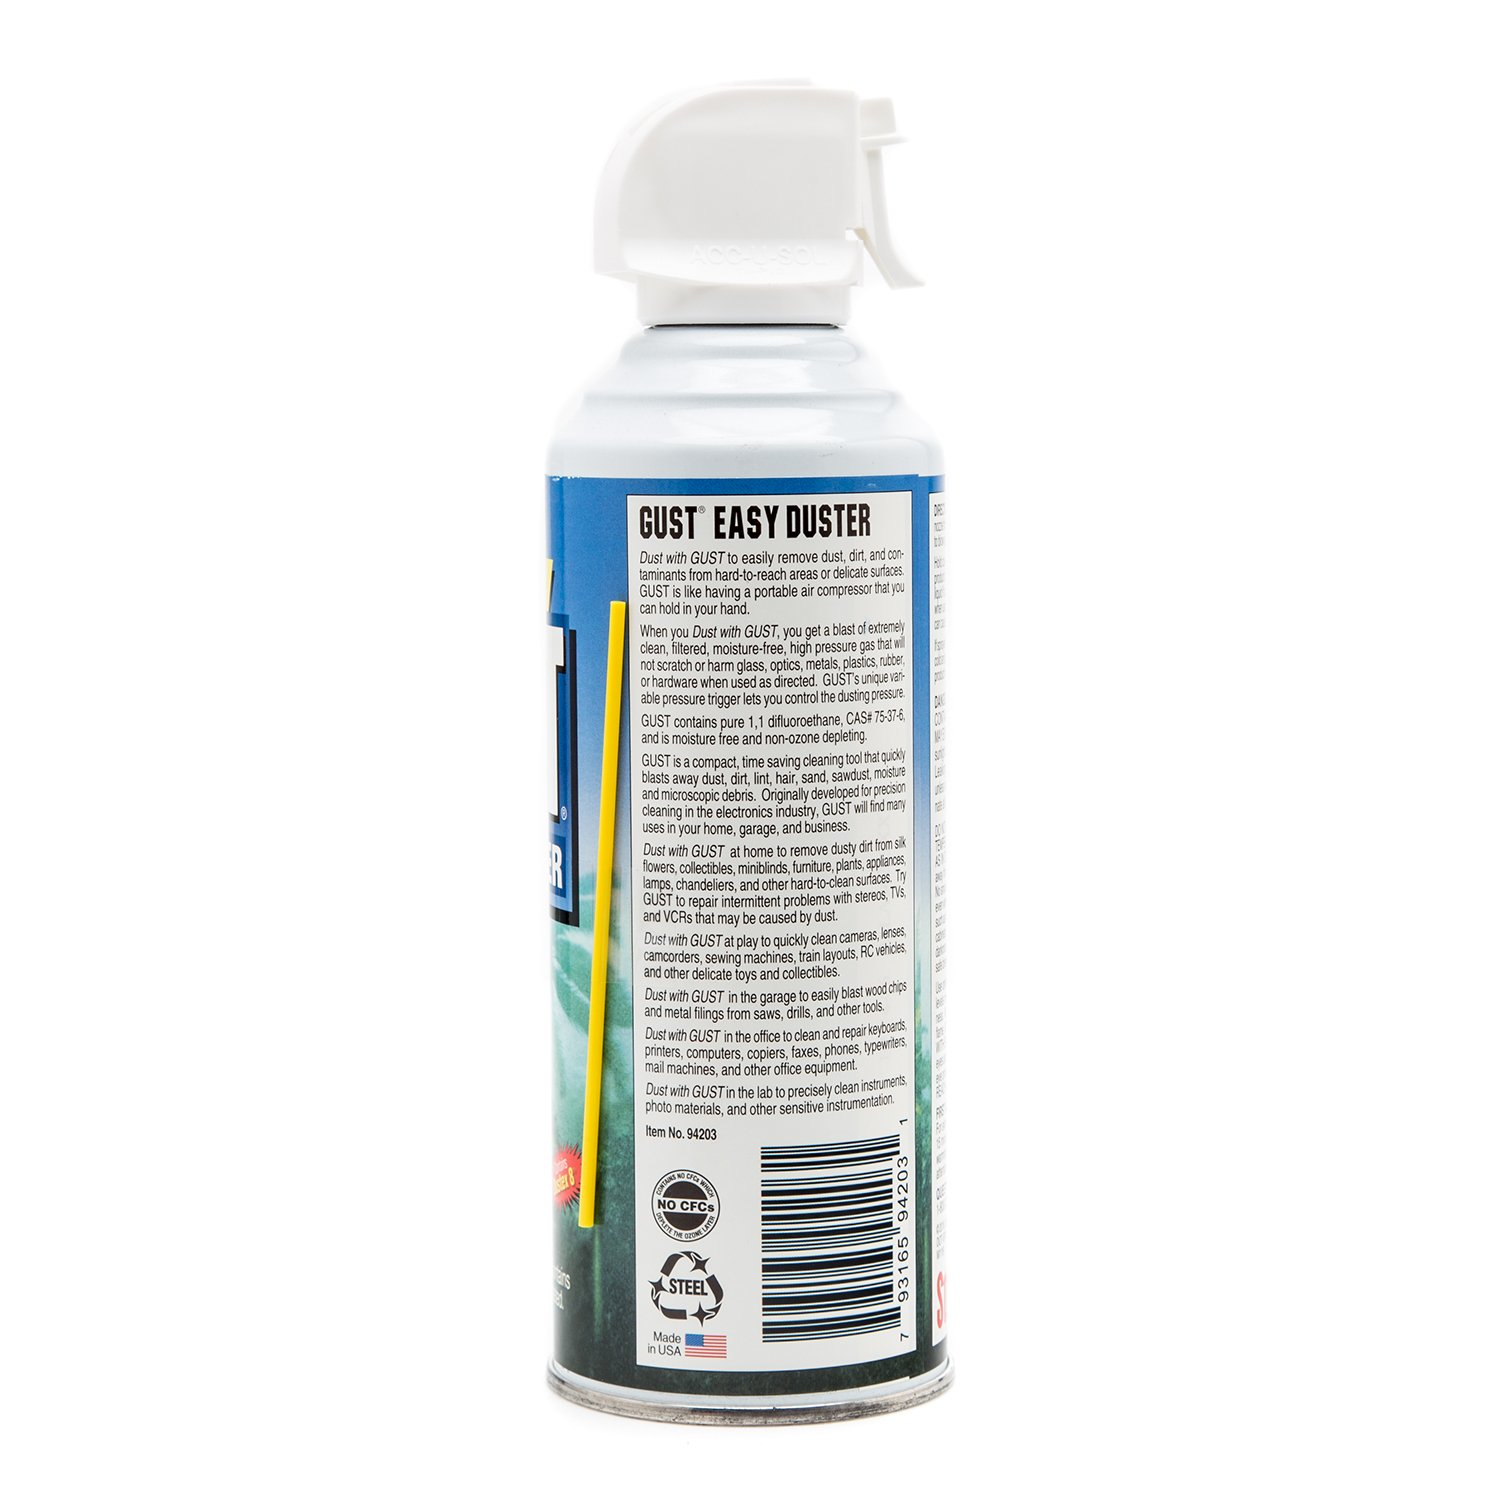 Stoner 94203 GUST Easy Air Duster - 12 oz. 3 Pack by Stoner (Image #2)